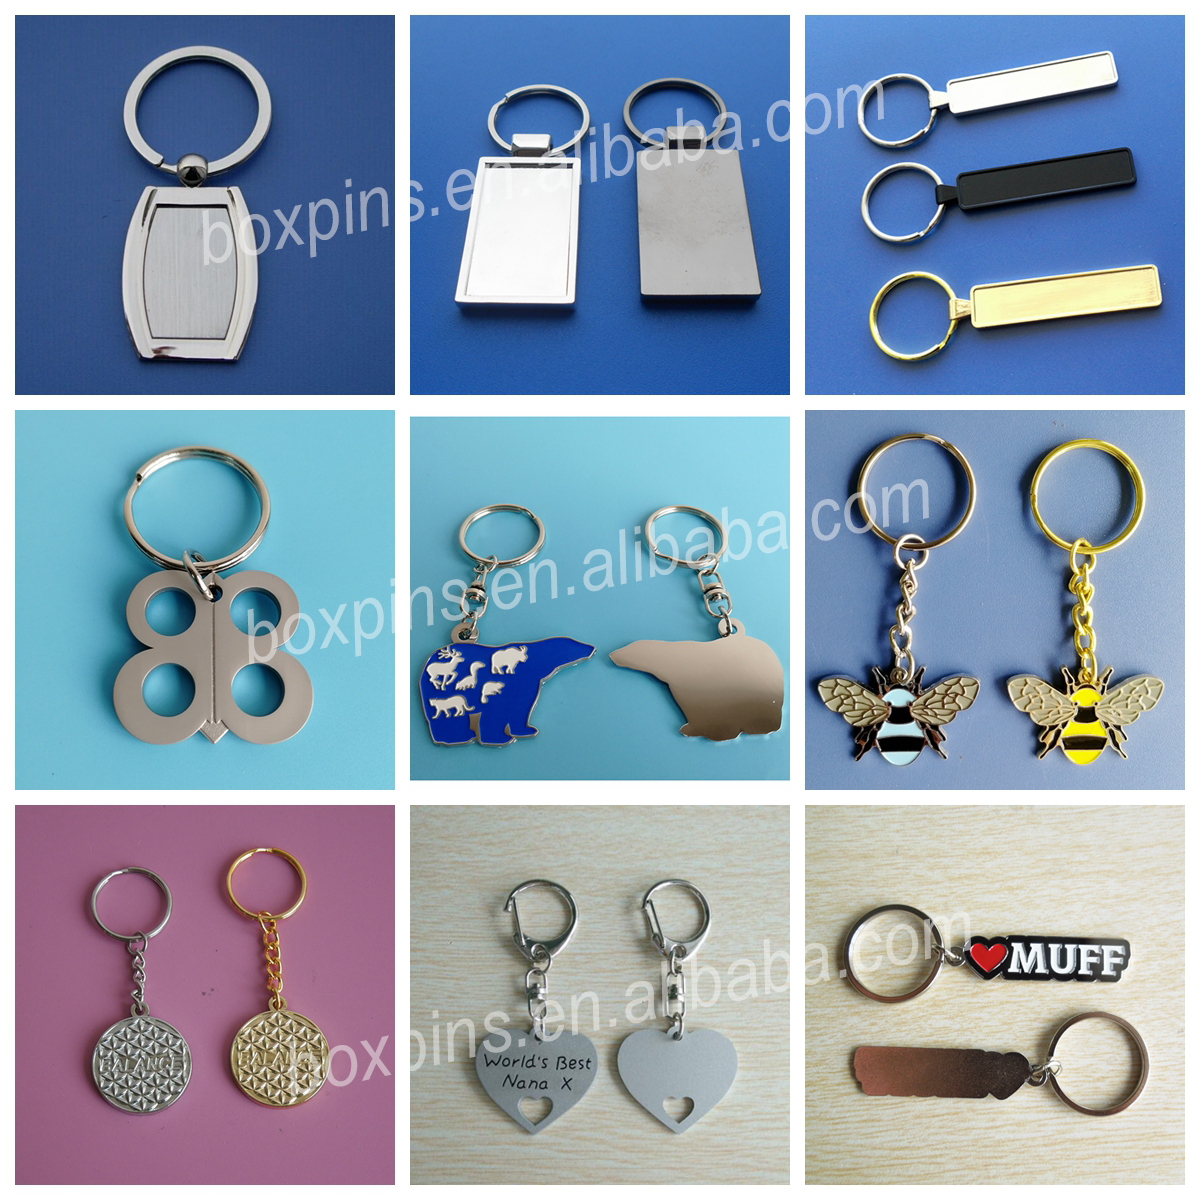 Custom Animal Shape Keychains Soft Enamel Spider Promotional Key Chain